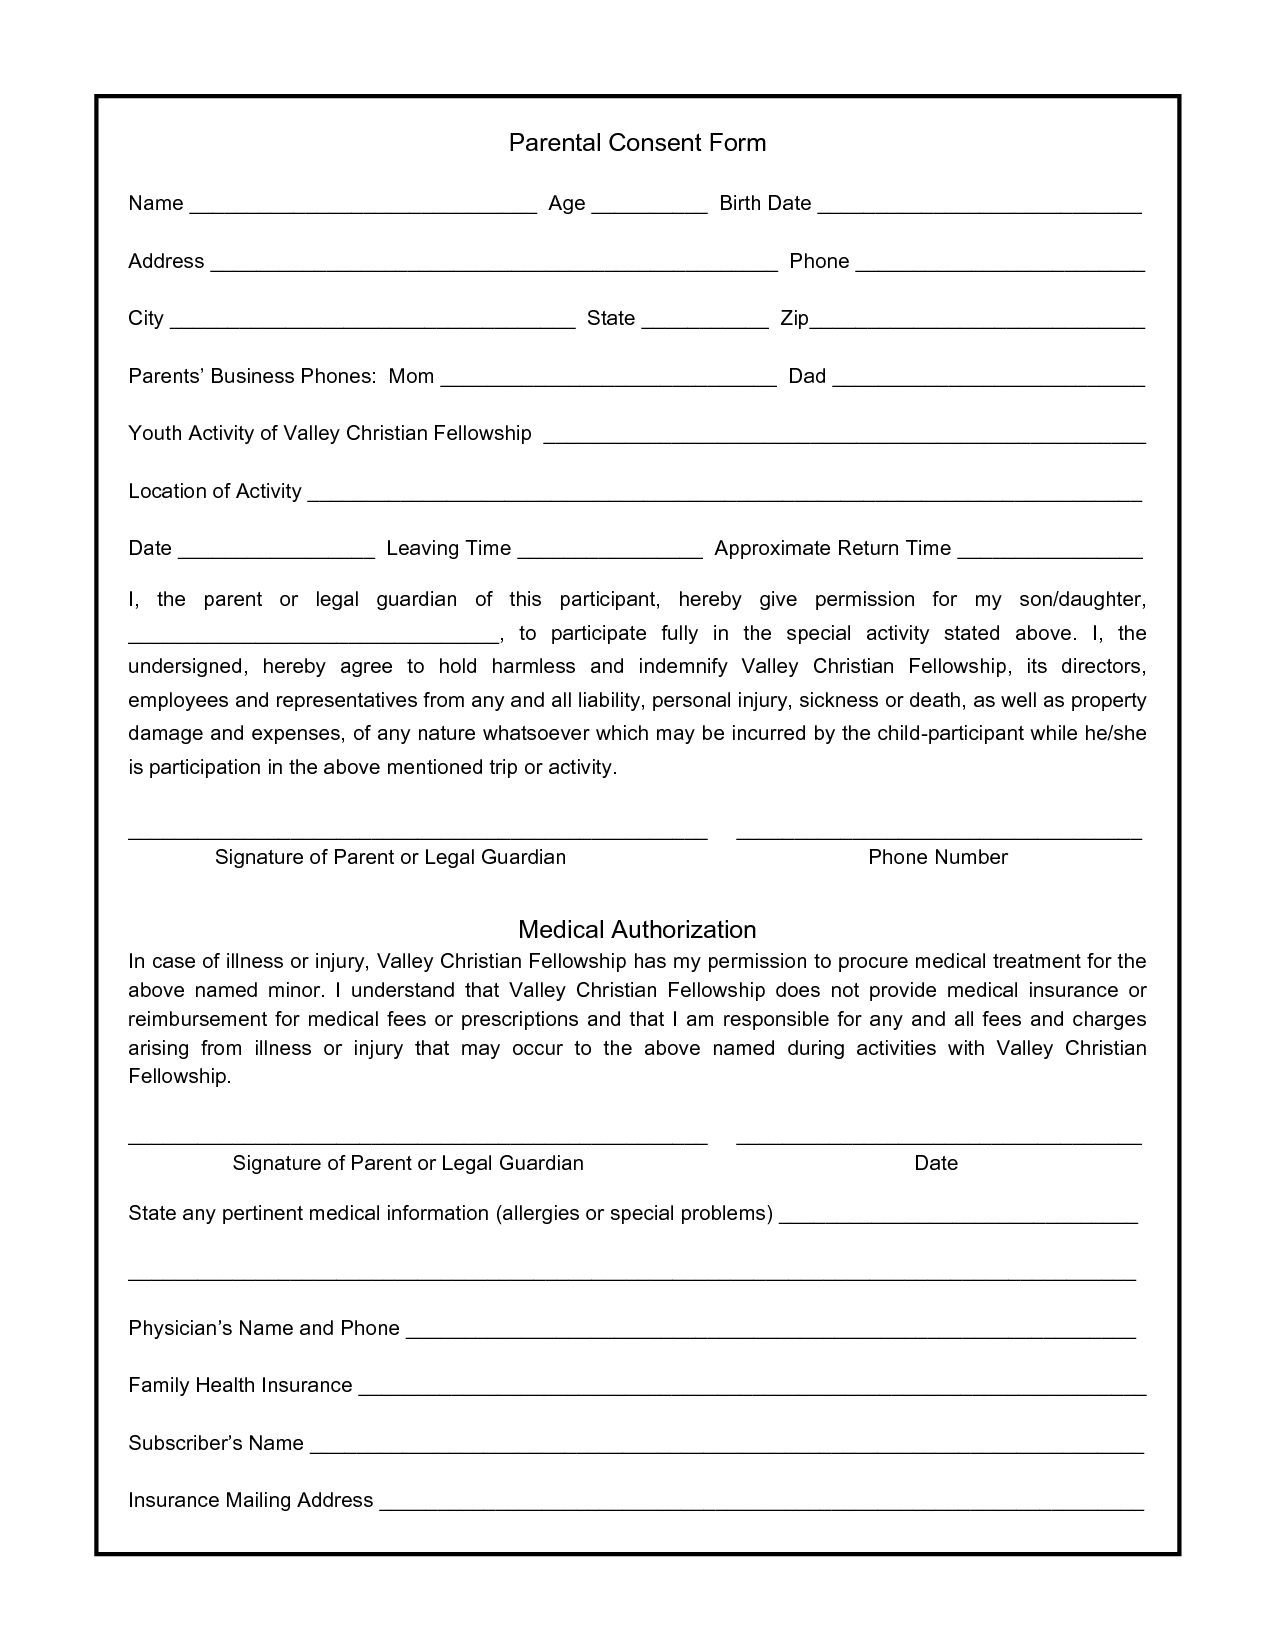 Parental consent form for photos swifter parental consent parental consent form for photos swifter parental consent form for medical treatment thecheapjerseys Choice Image